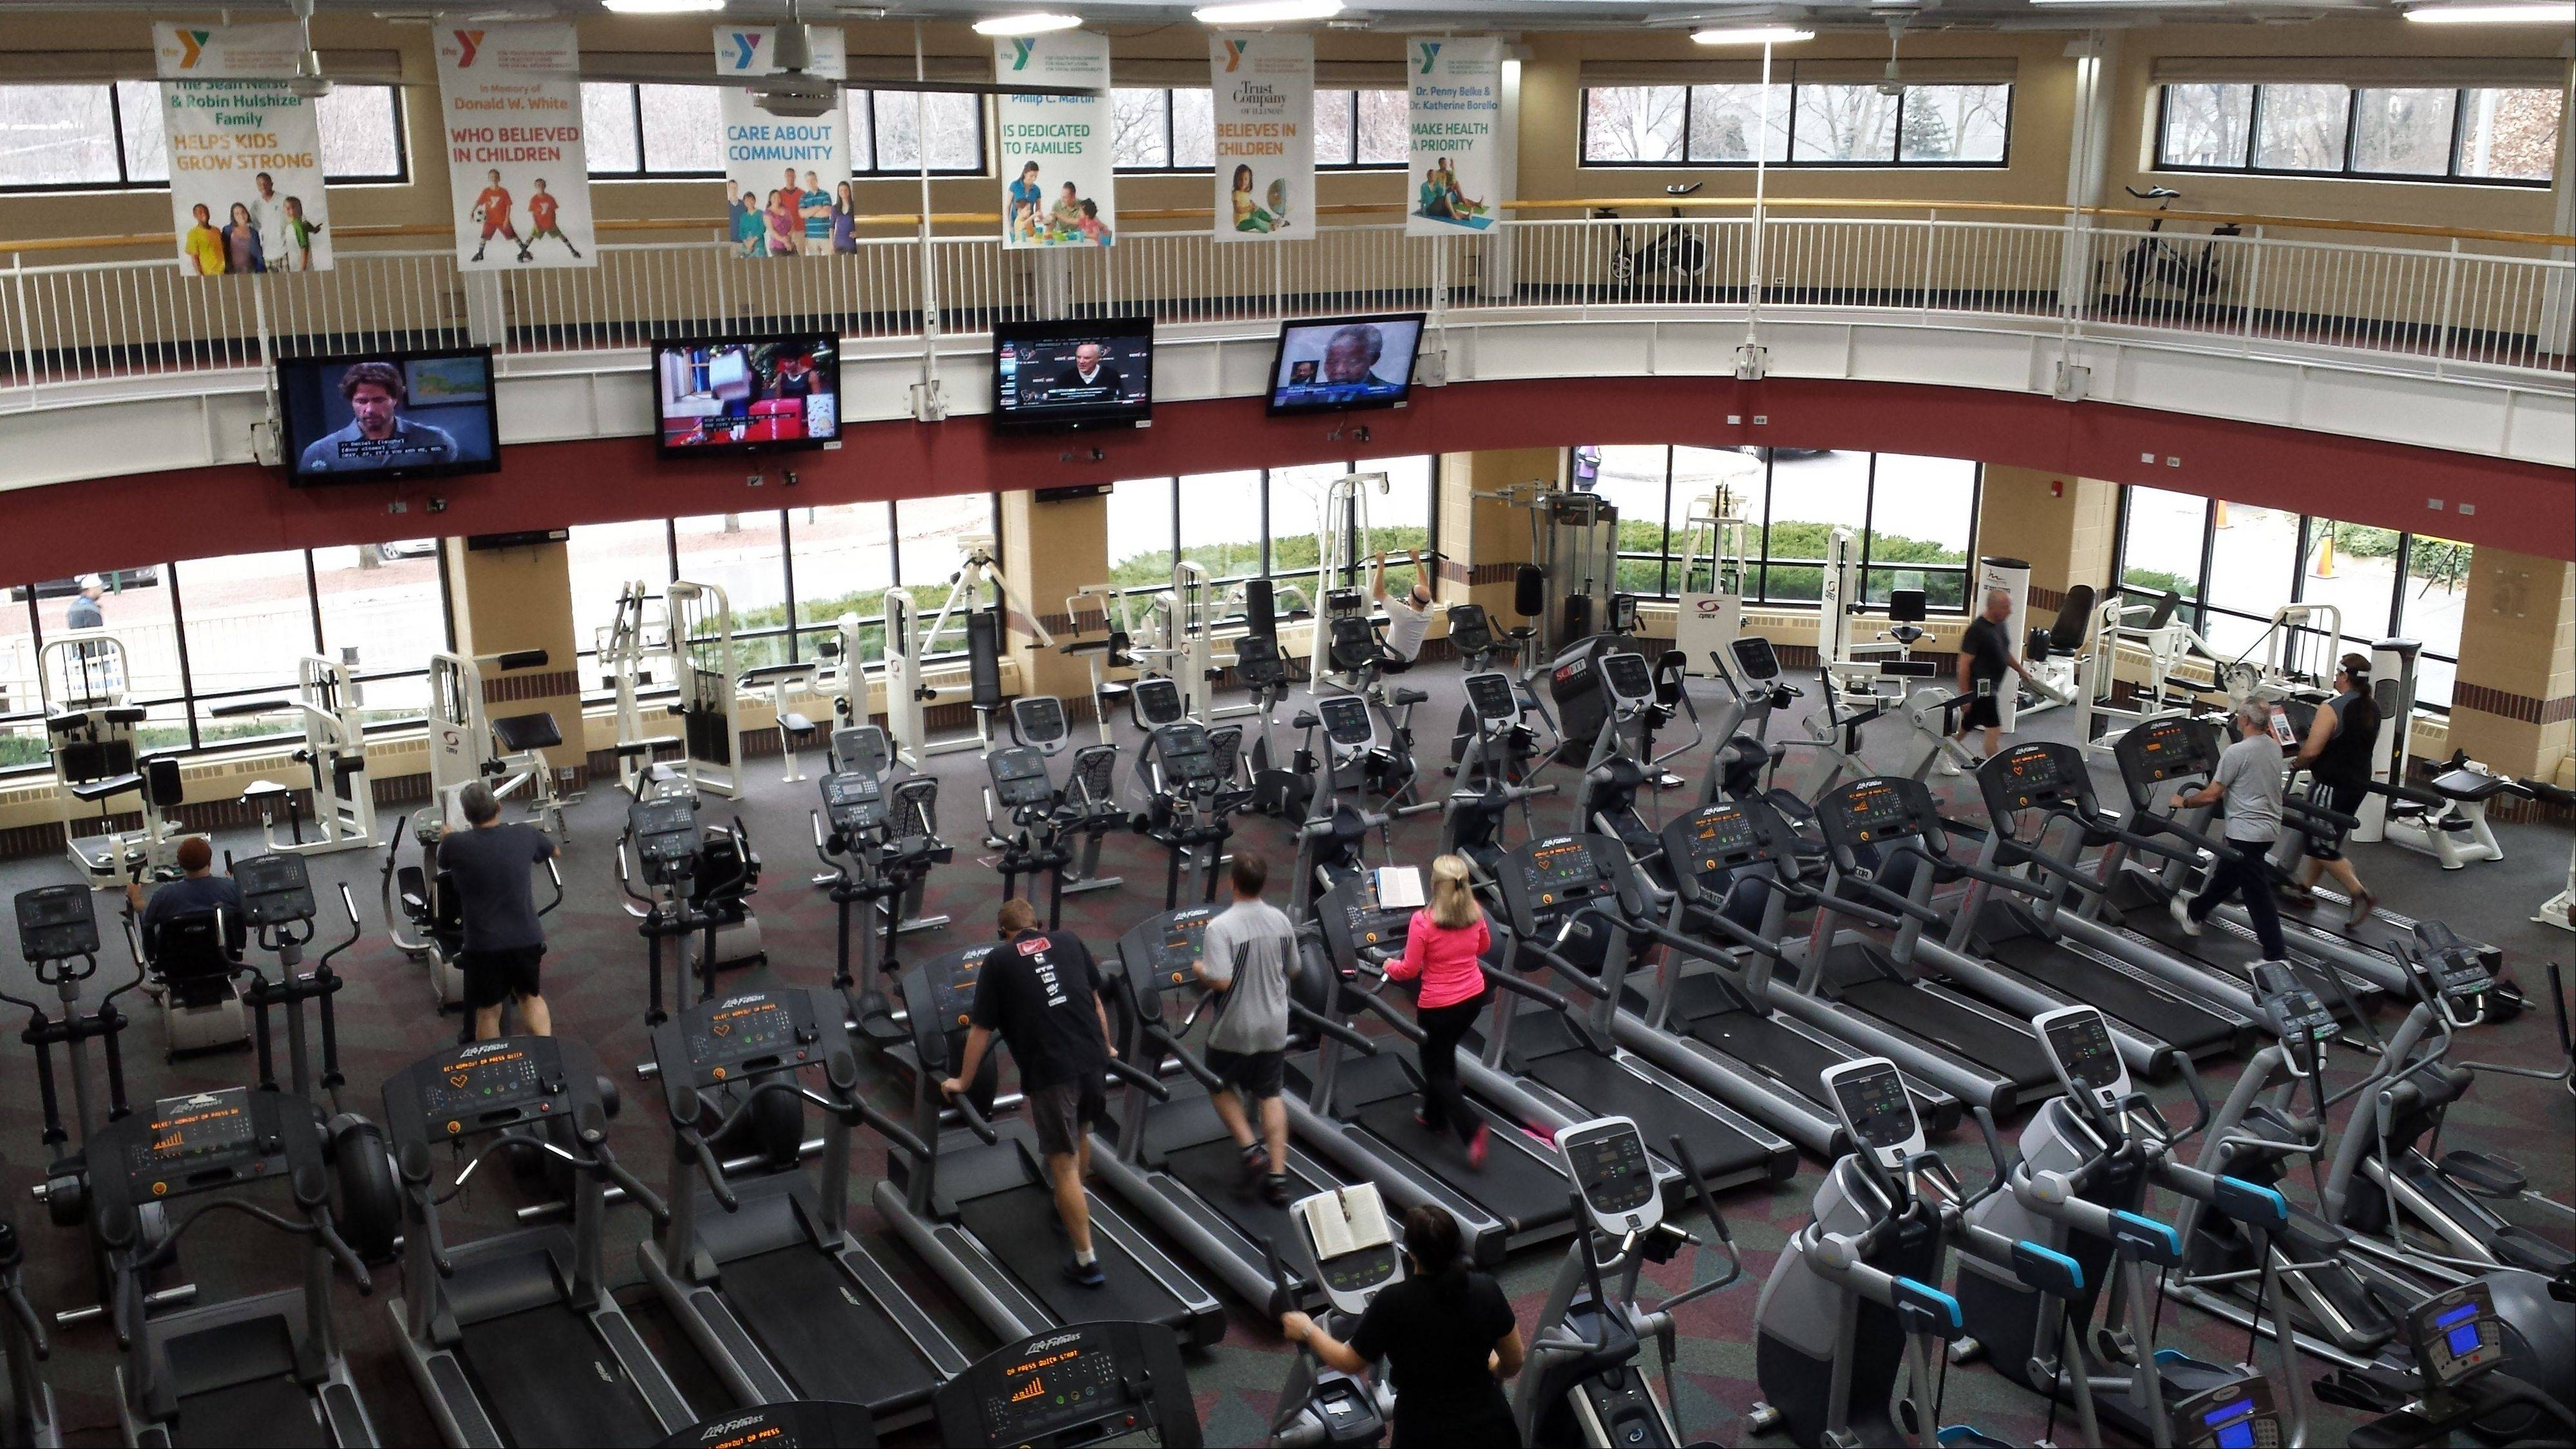 The B.R. Ryall YMCA offers a fitness center where members of all ages can take part in exercise programs and health classes. The Y offers scholarships to help ensure anyone can have access to its programs and facilities.